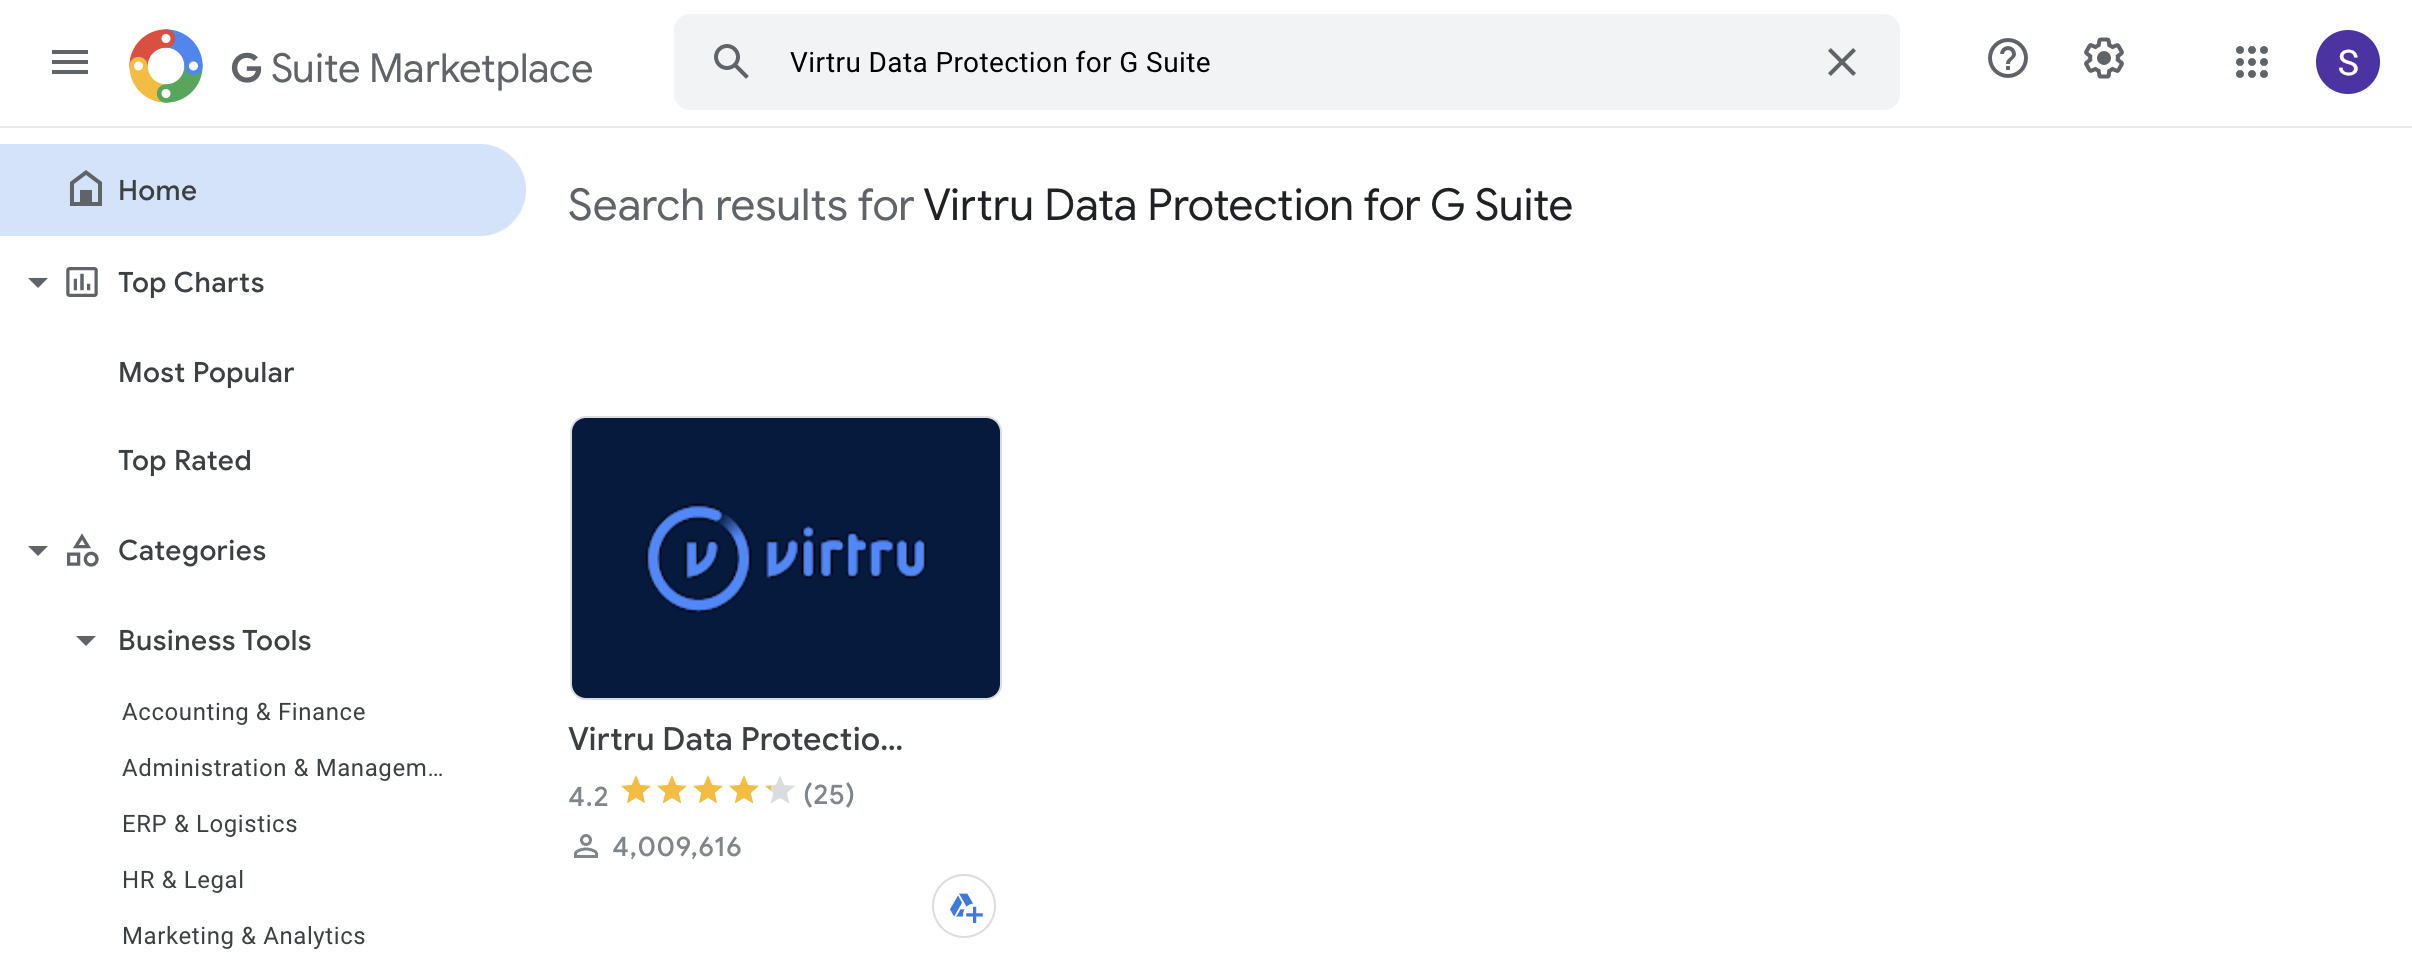 Virtru Data Protection for G Suite in the G Suite Marketplace